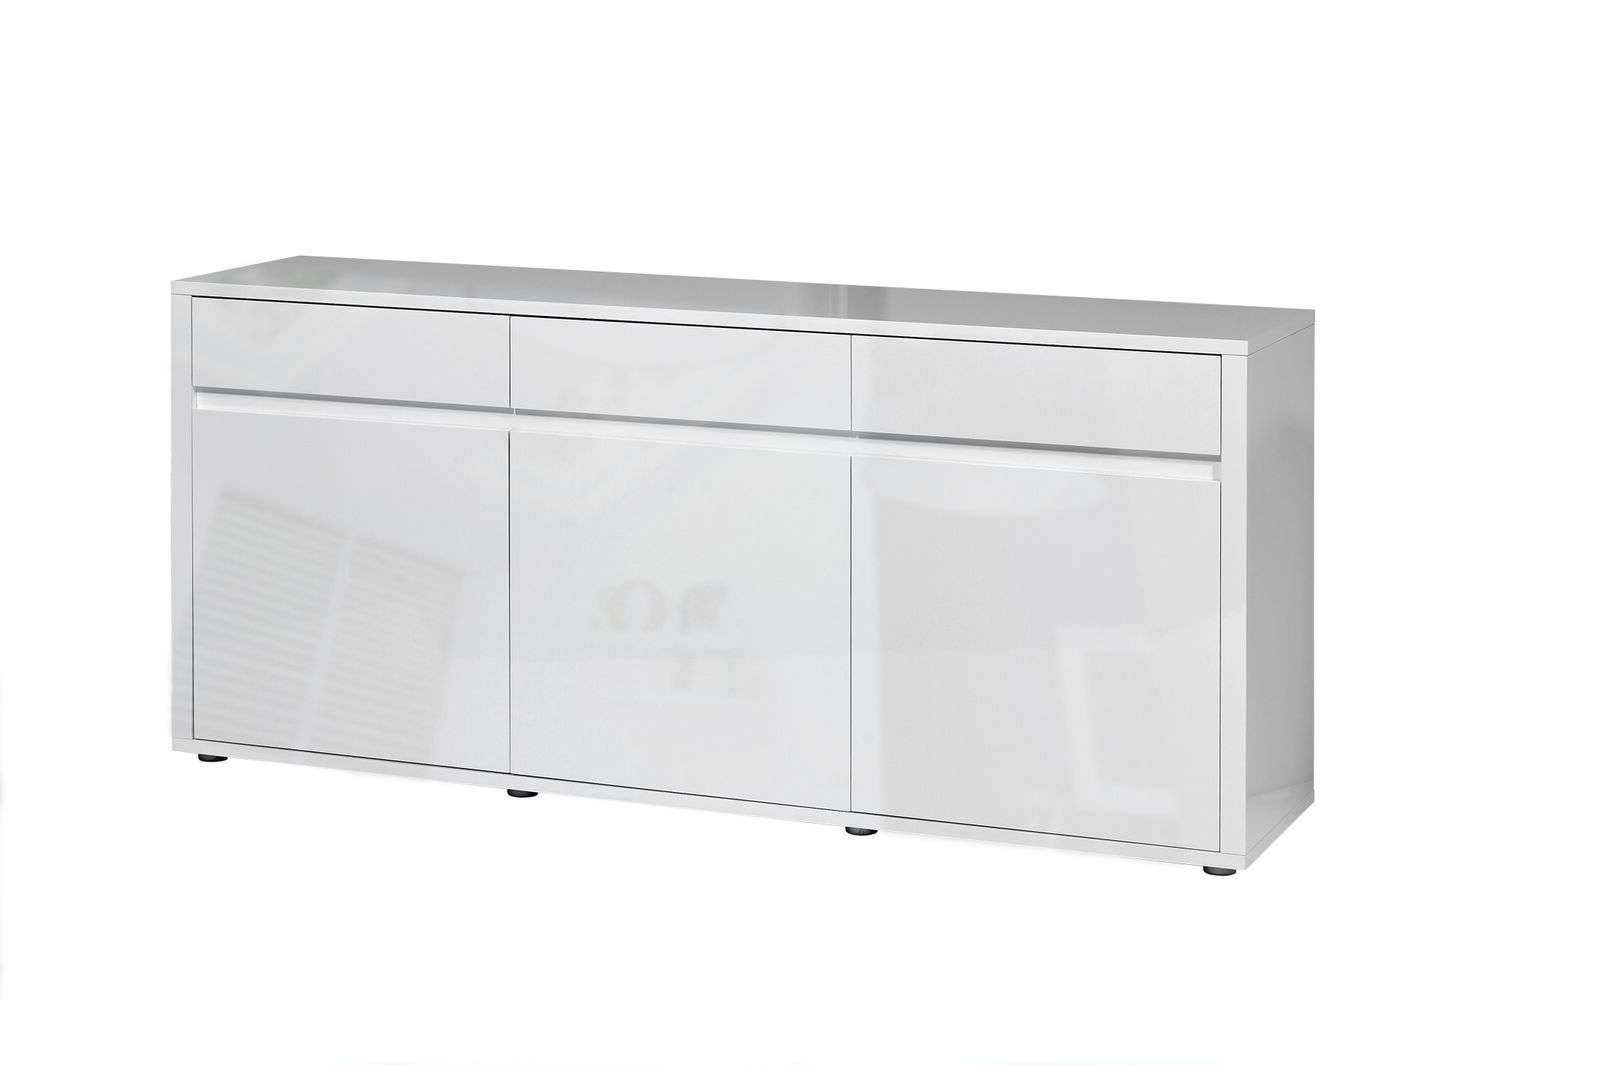 Urbana White High Gloss Sideboard 3 Drawer 3 Door | Fads With White High Gloss Sideboards (View 19 of 20)